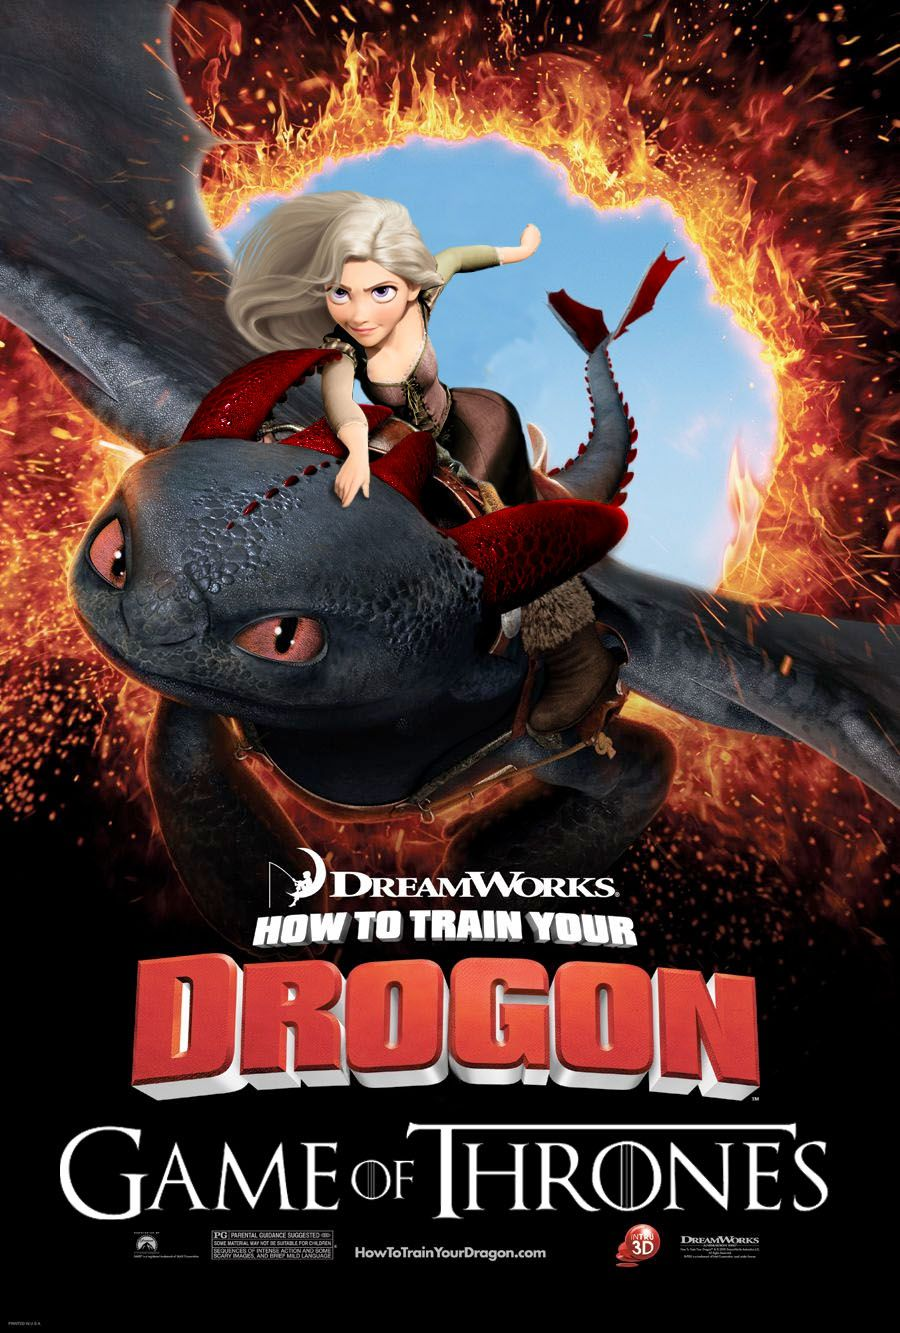 How To Train Your Drogon Mashup Movie Poster Reimagines Game Of